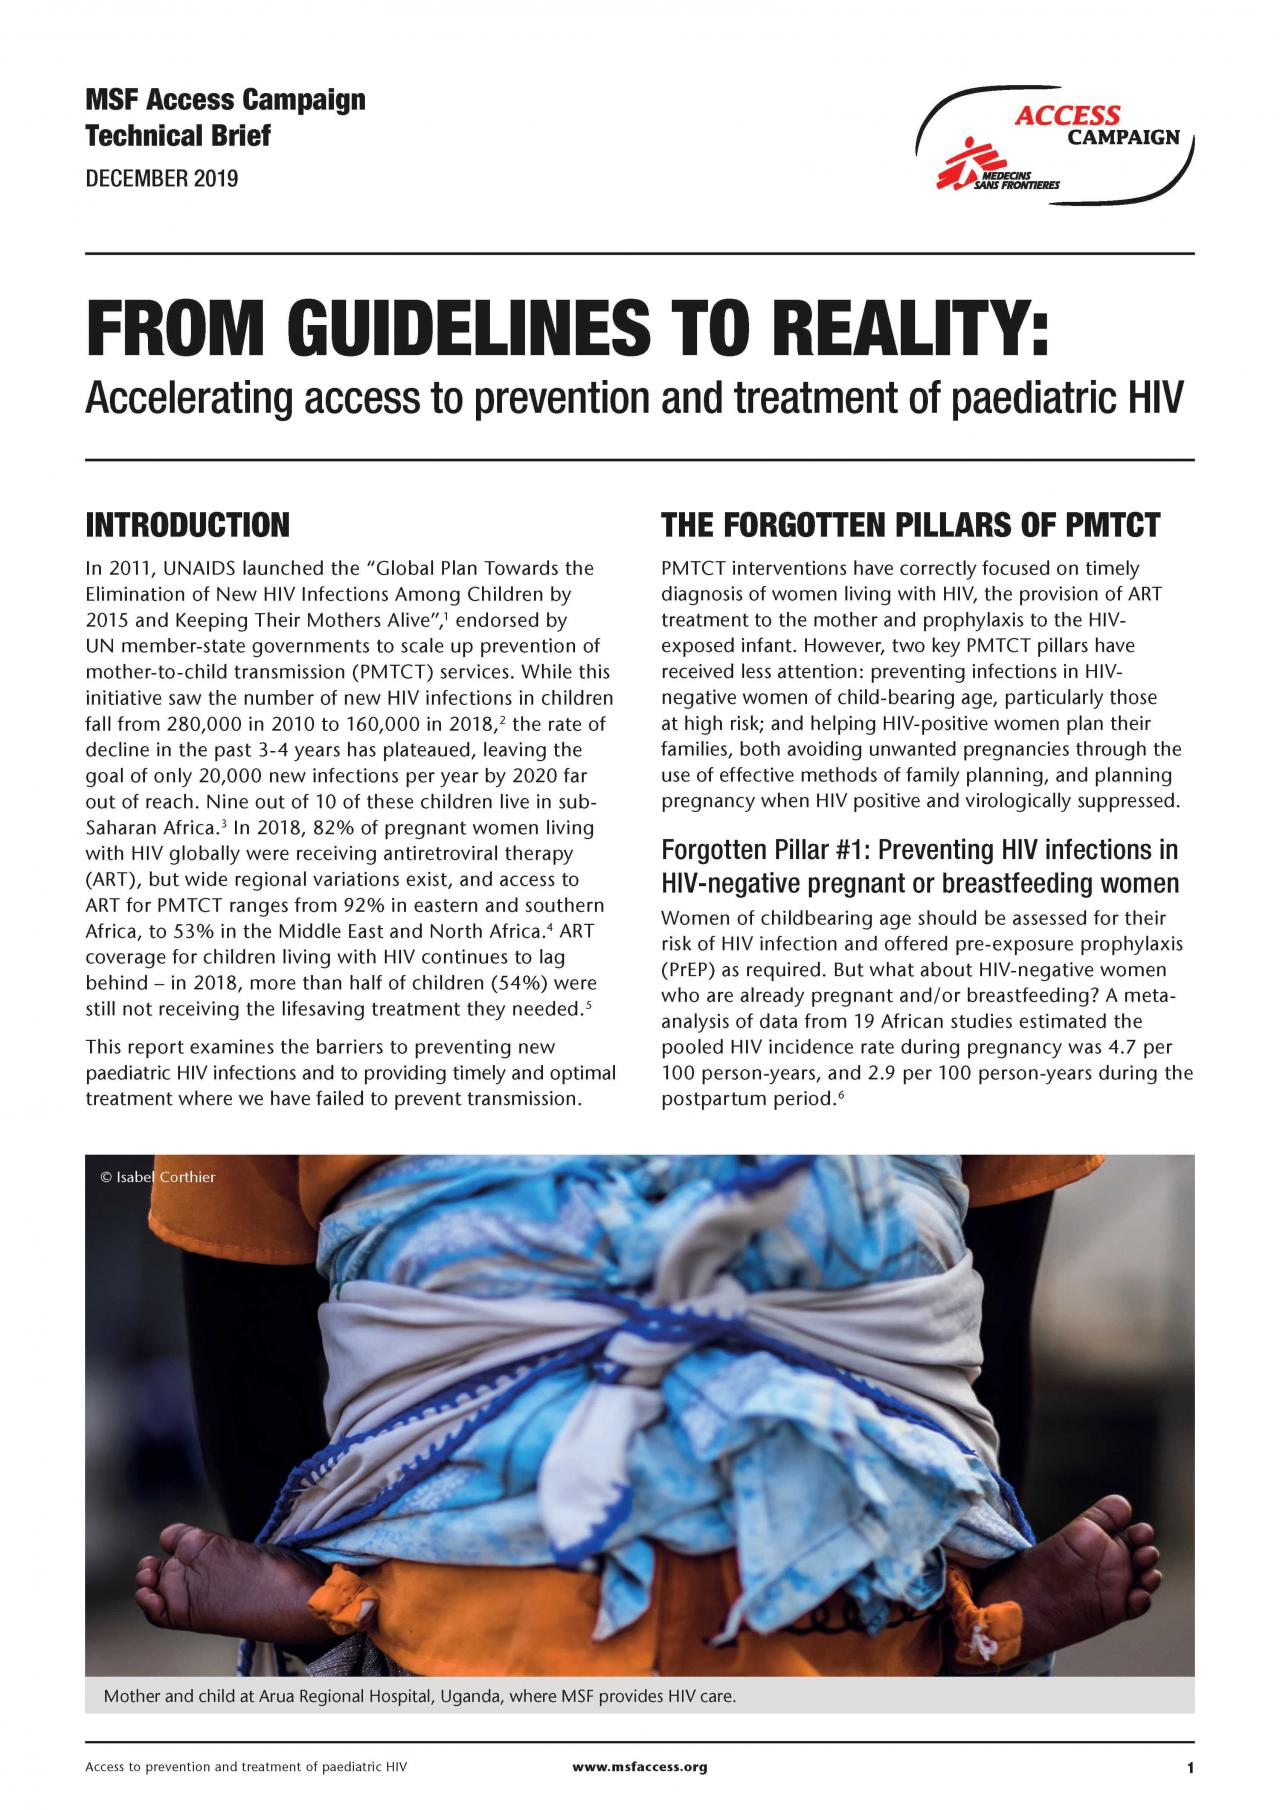 From Guidelines to Reality Accelerating Access to Prevention and Treatment of Paediatric HIV